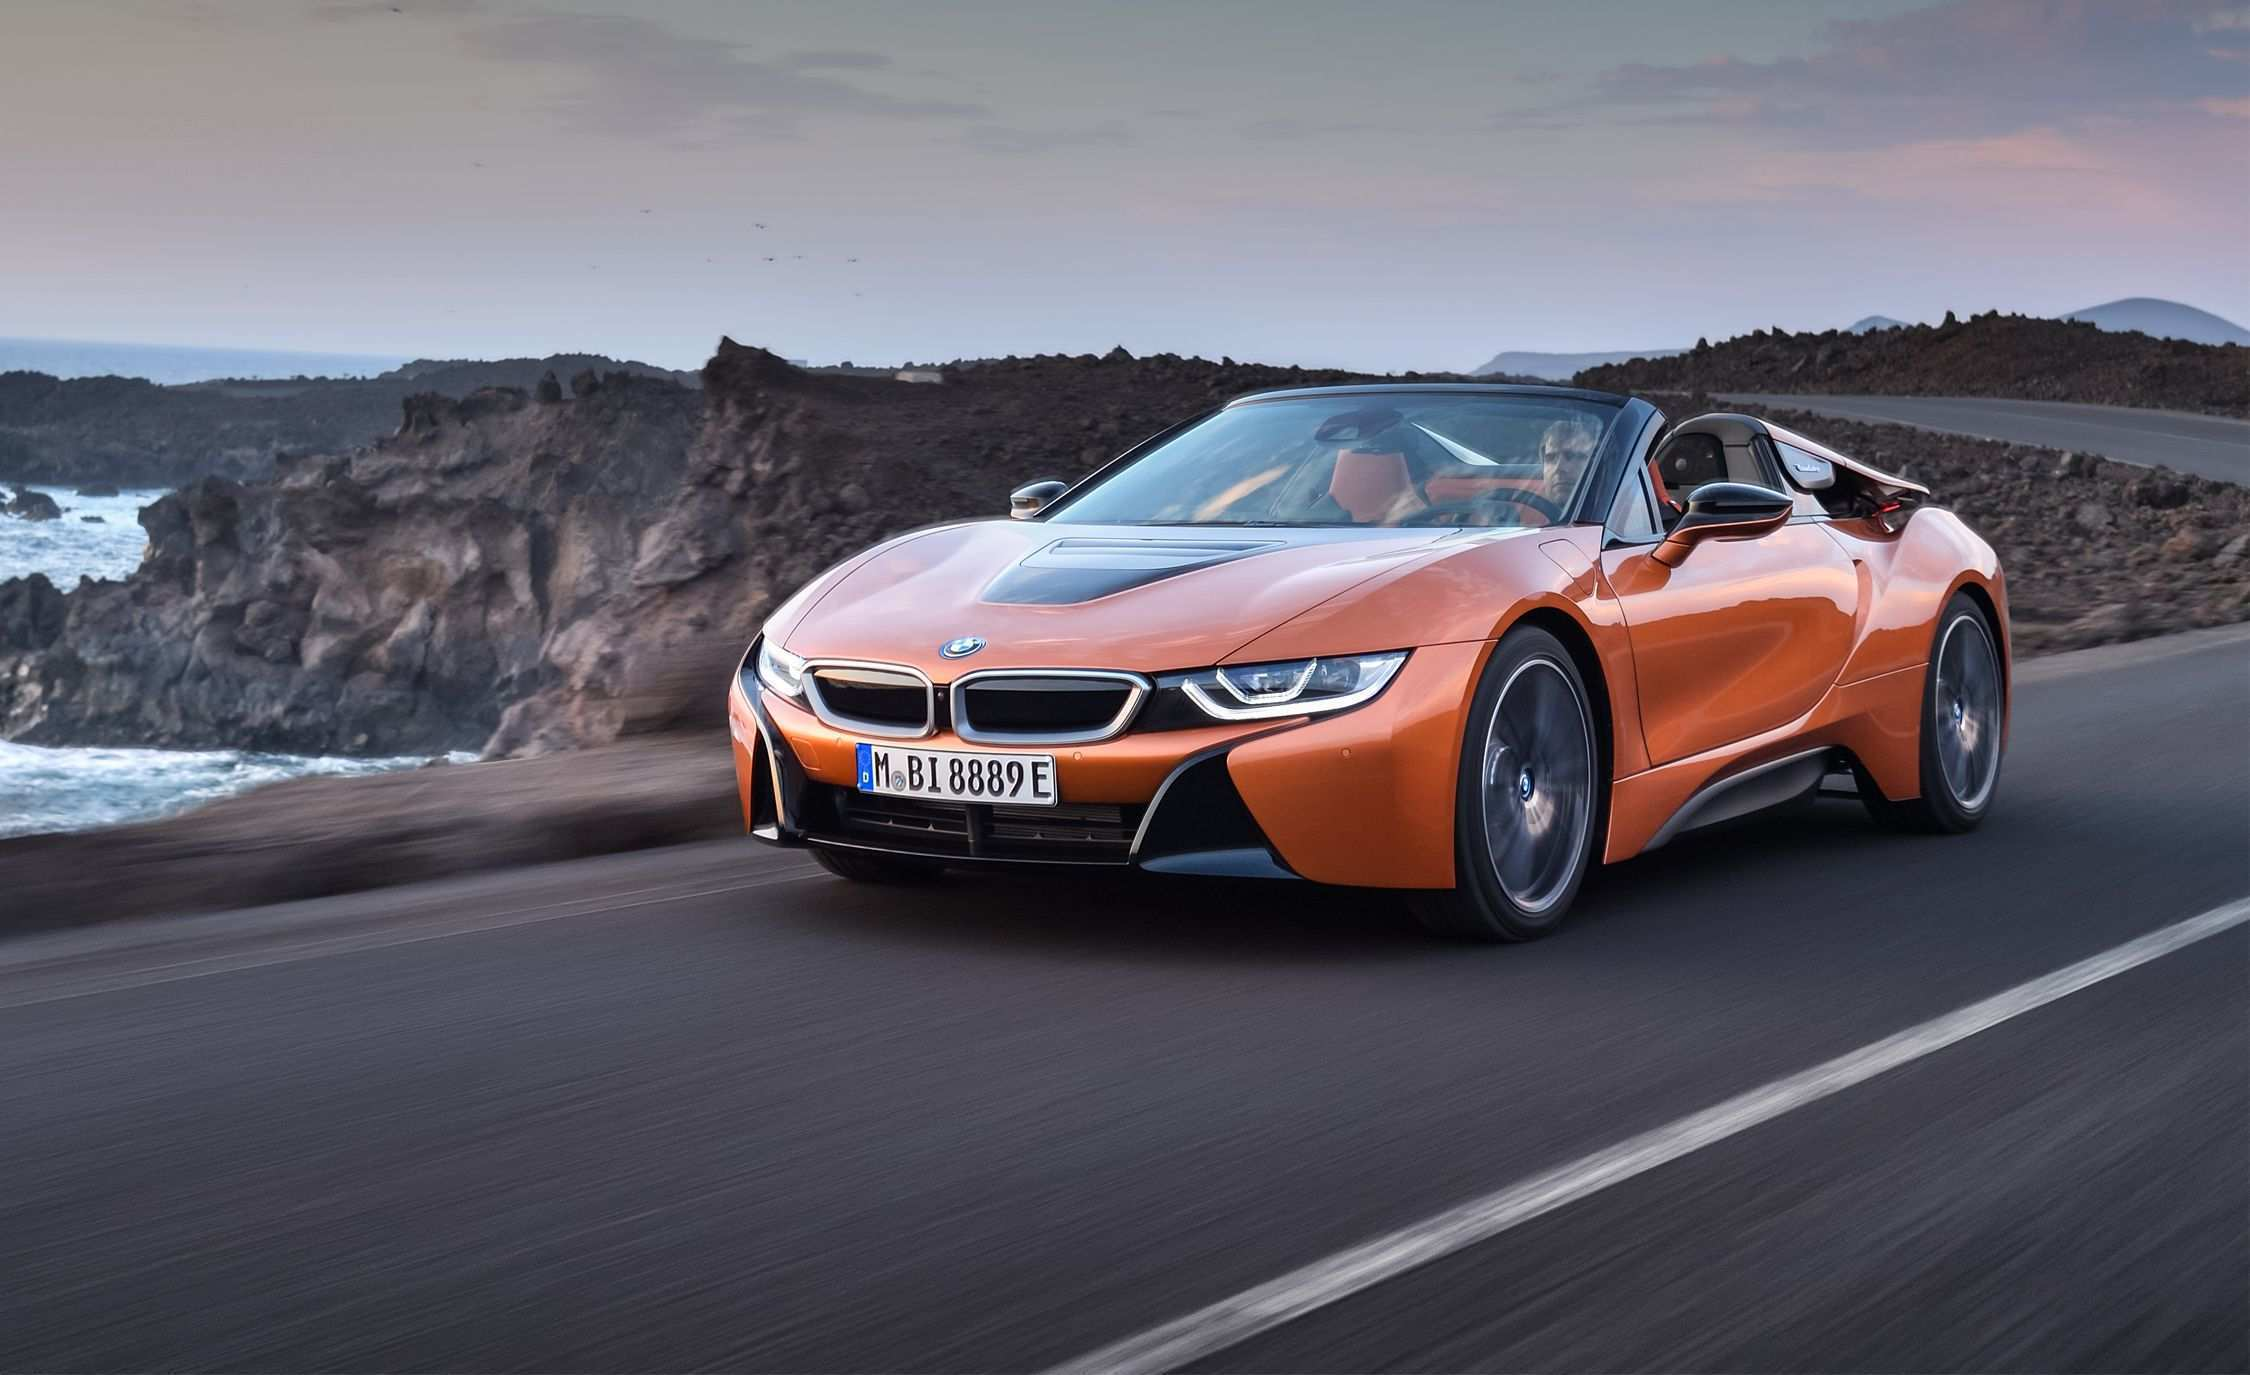 81 Best Review 2019 Bmw Roadster Specs and Review with 2019 Bmw Roadster